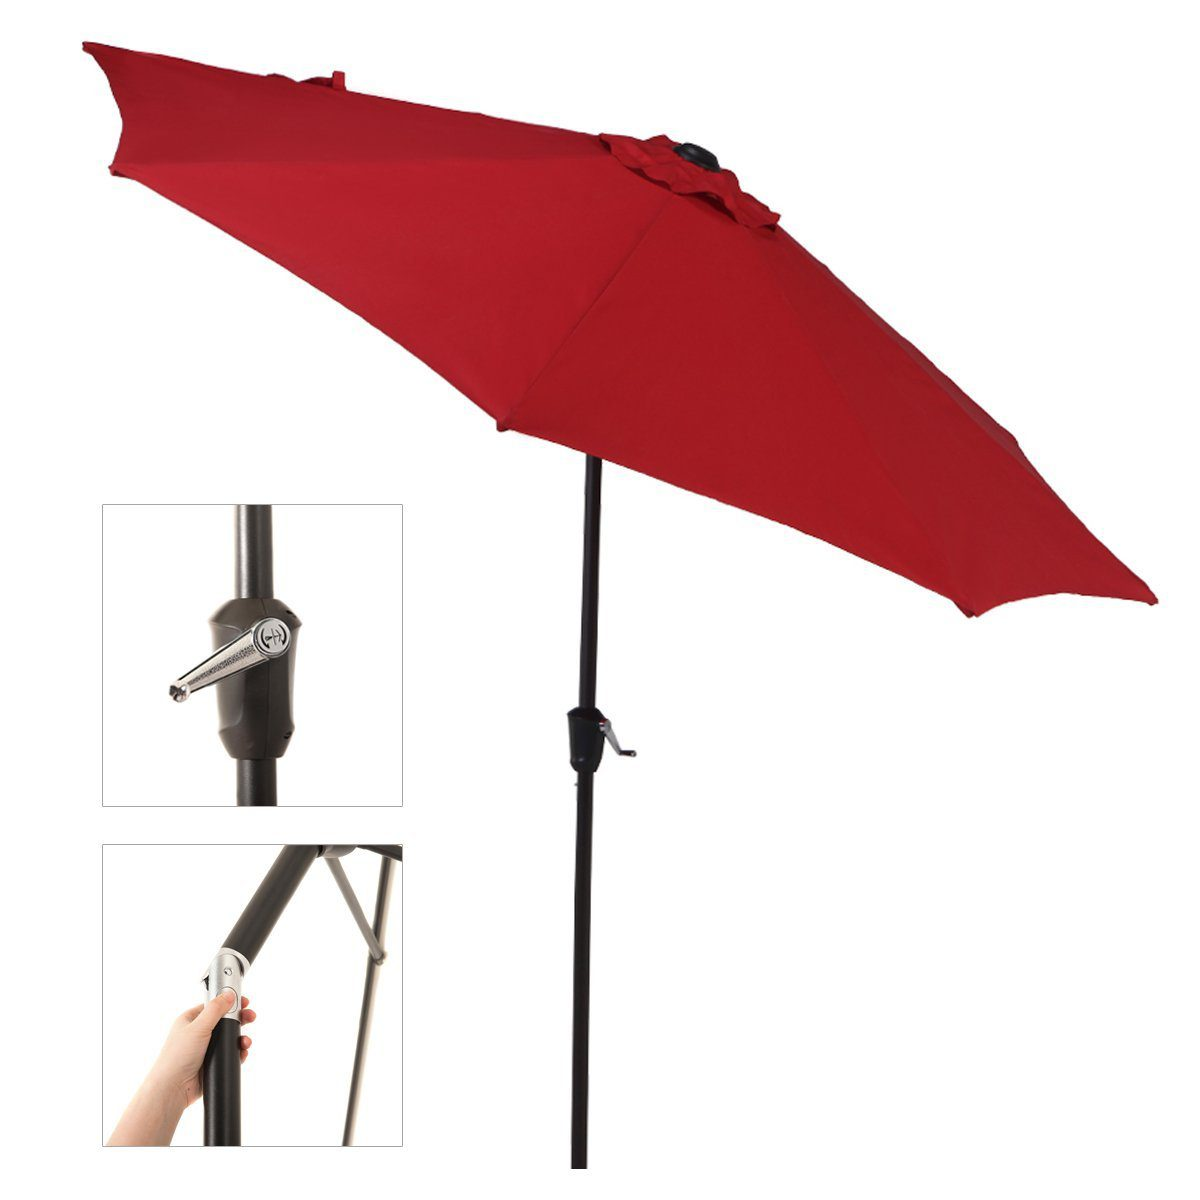 Outdoor Market Umbrella with Push Button Tilt and Crank, Patio Umbrella, 9.6 Ft, Red 2